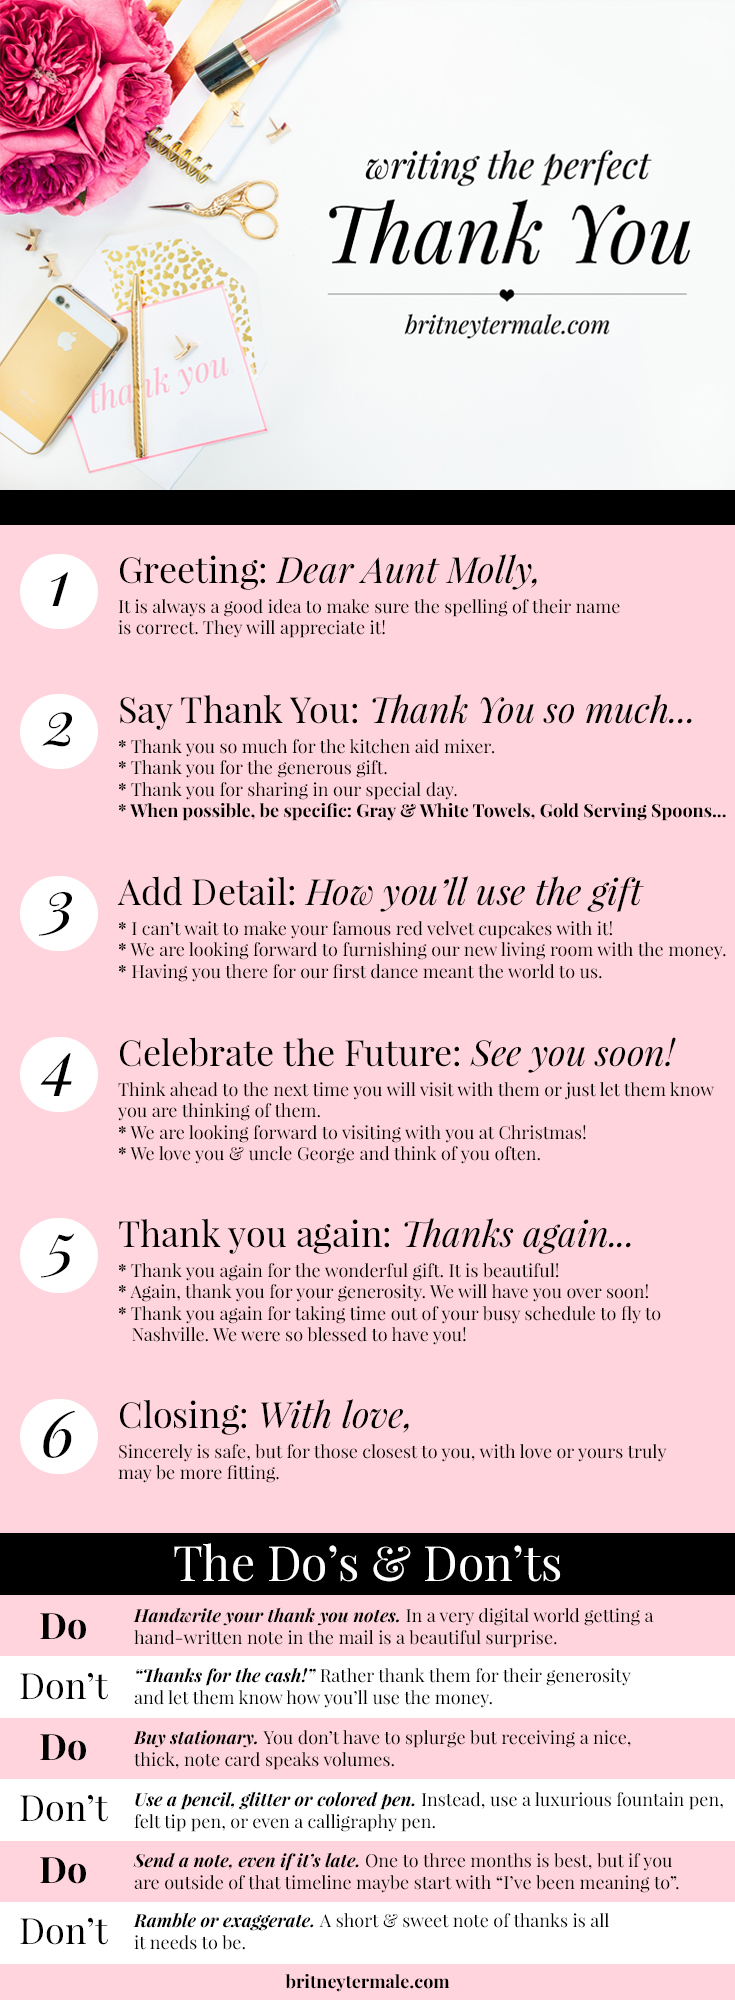 How to write the perfect thank you note l Britney Termale